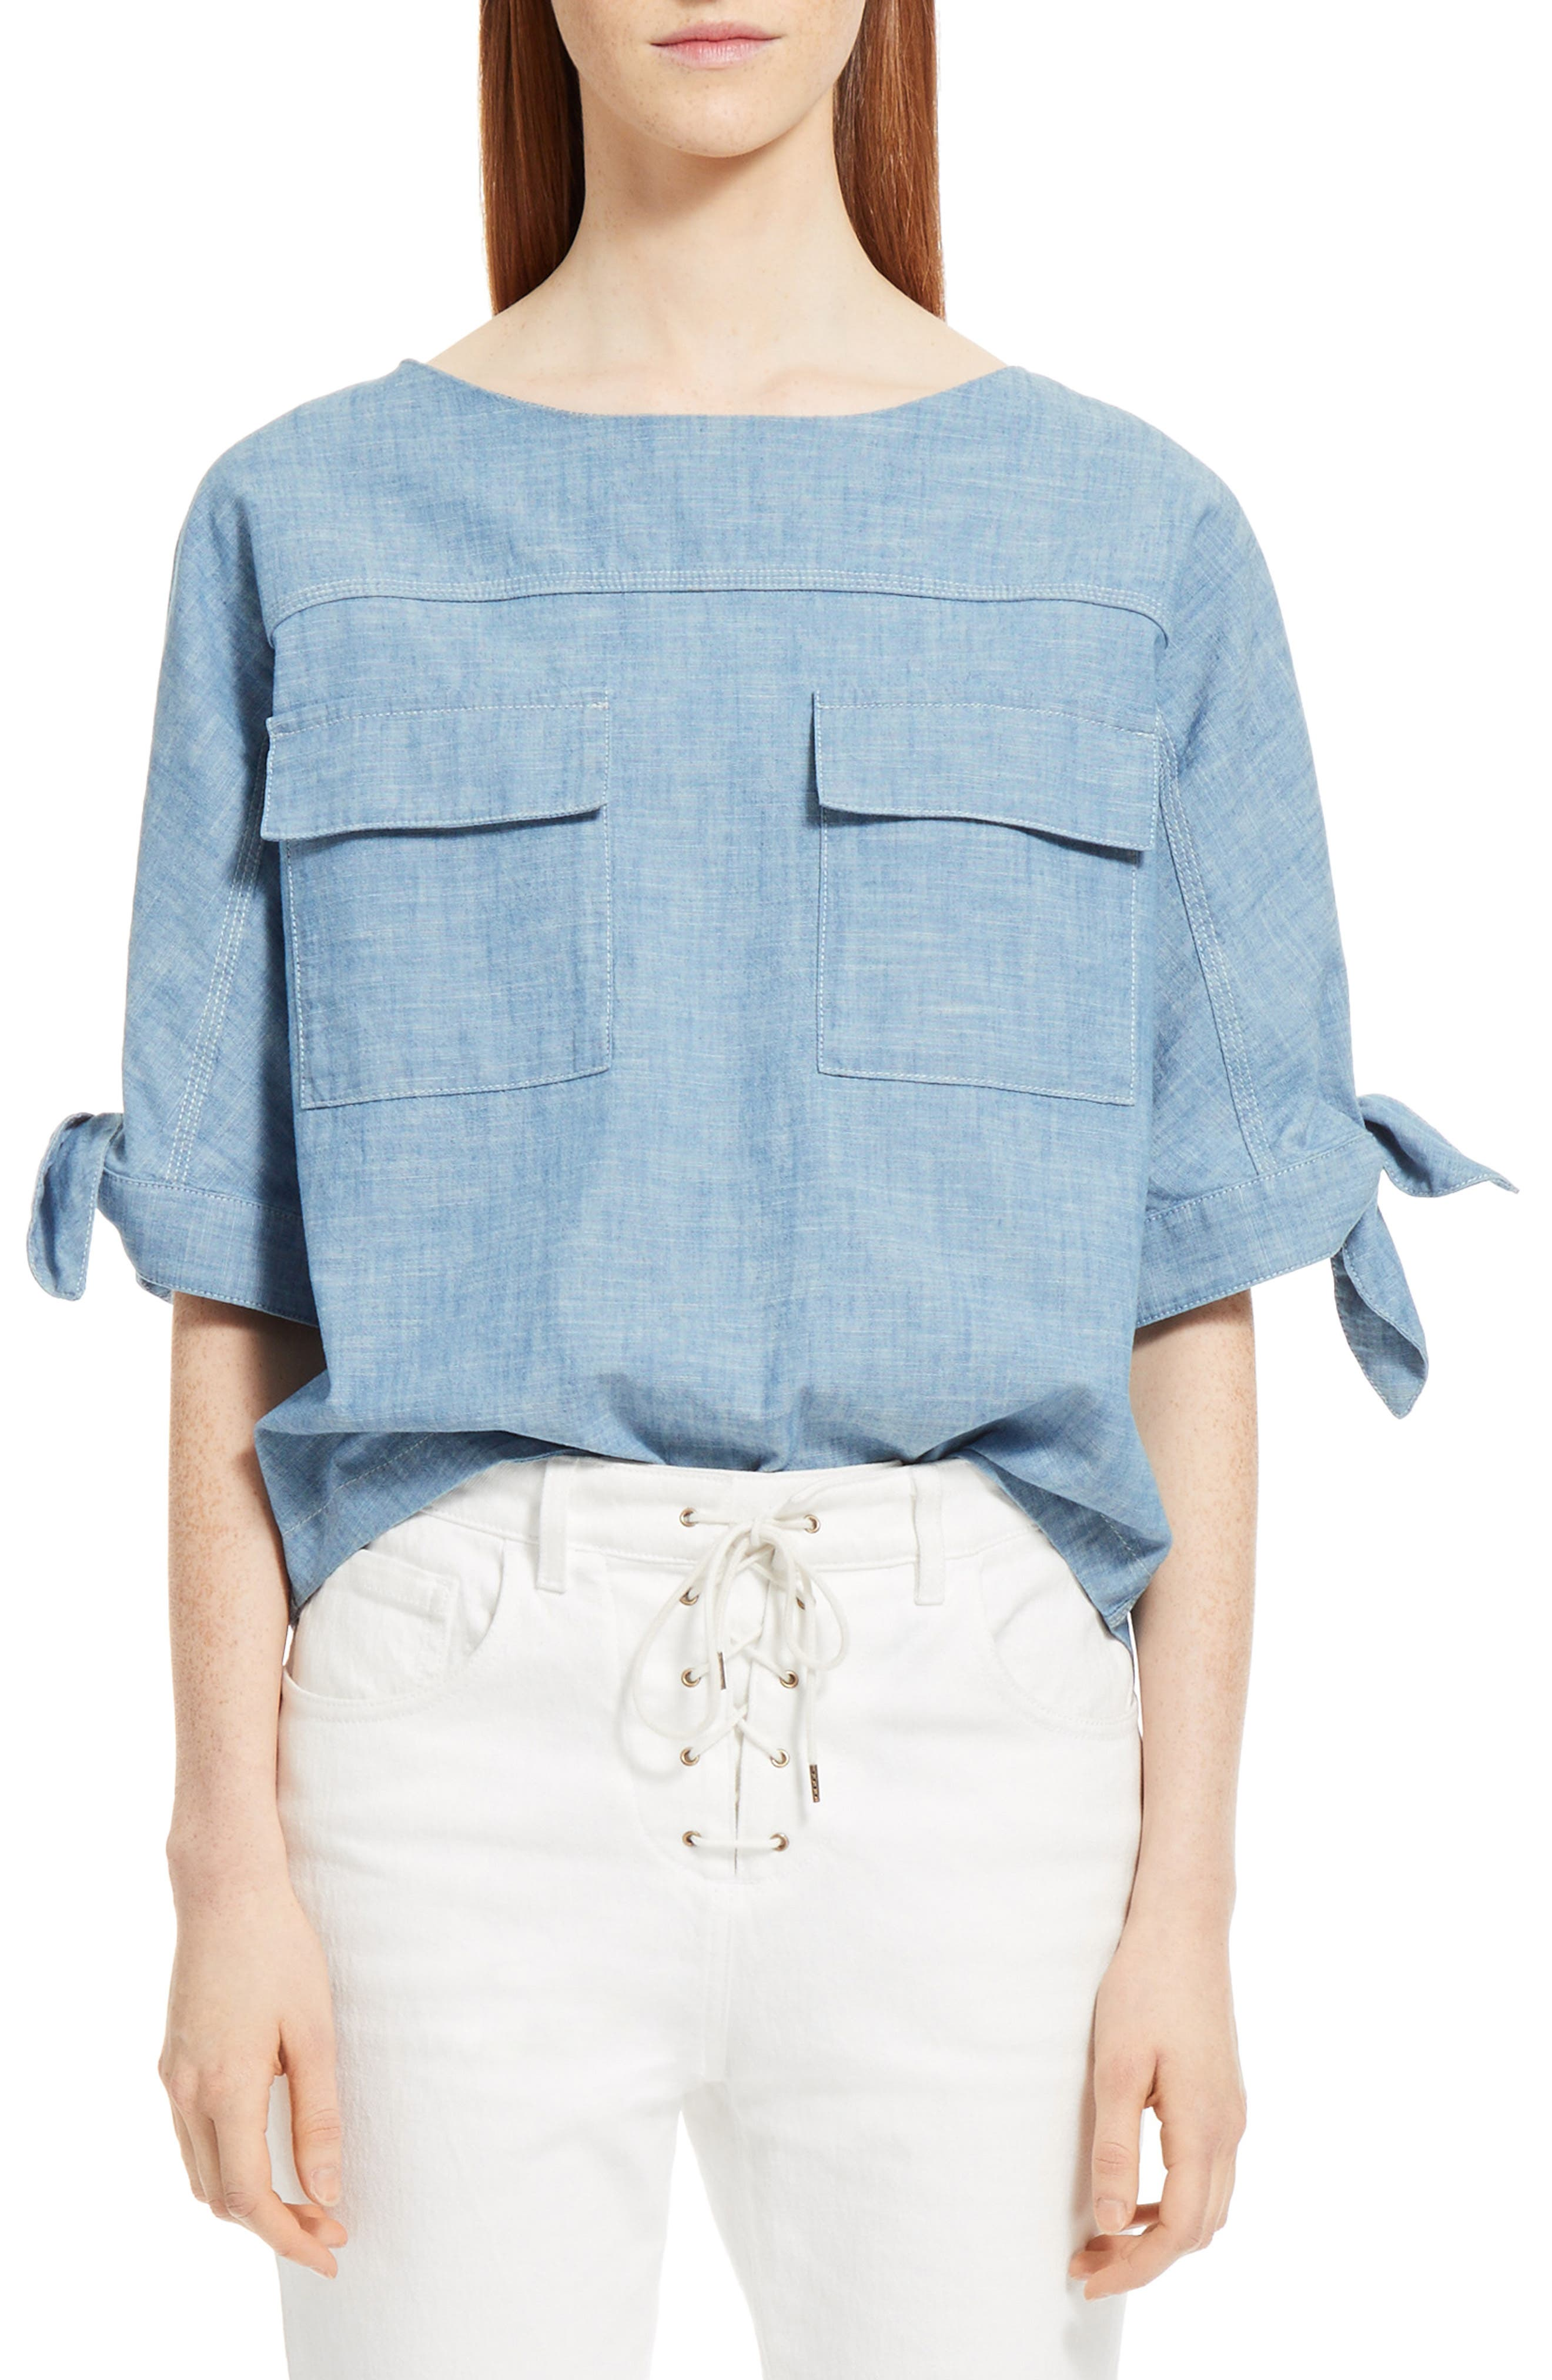 Chloé Chambray Top